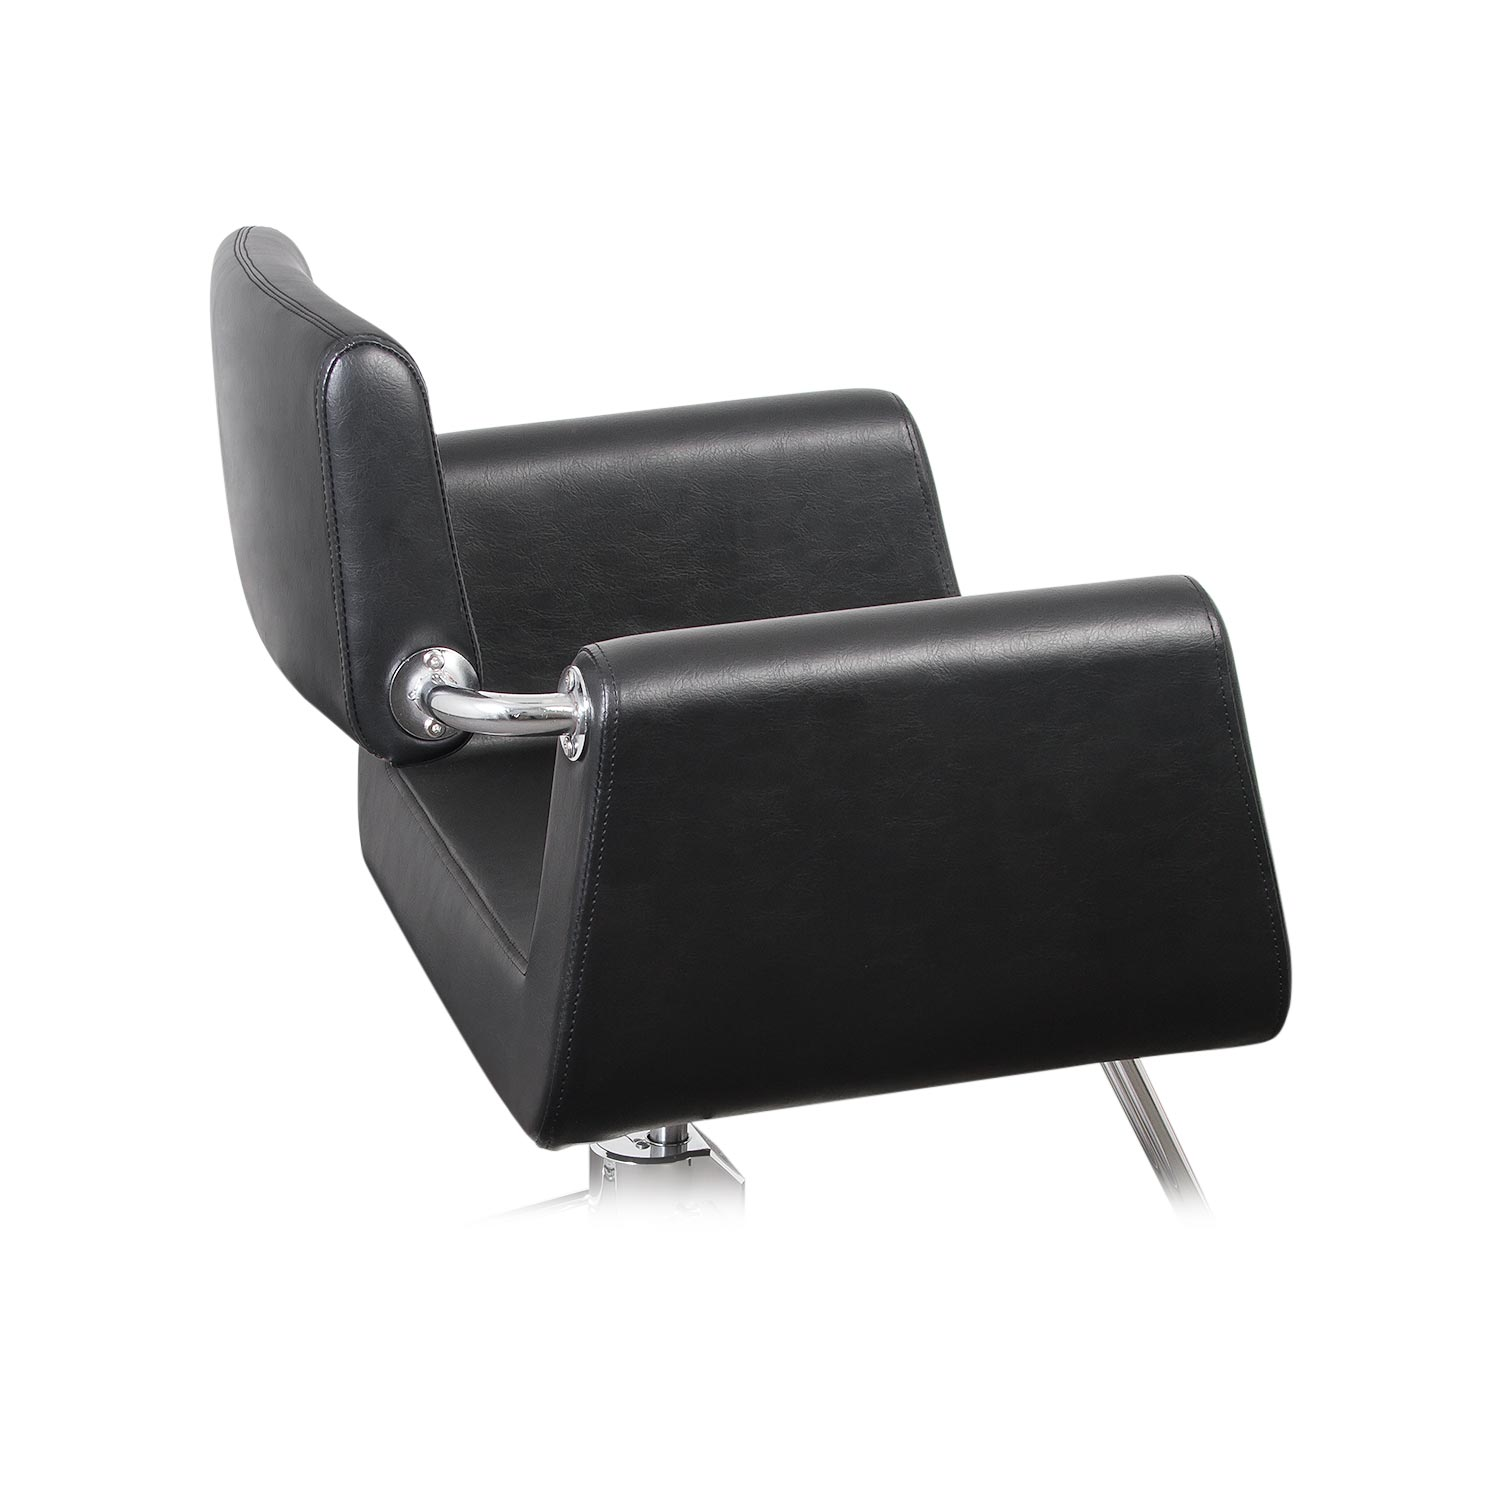 Capelli Modern Hair Chair with Chrome Elbow Brackets alternative product image 6